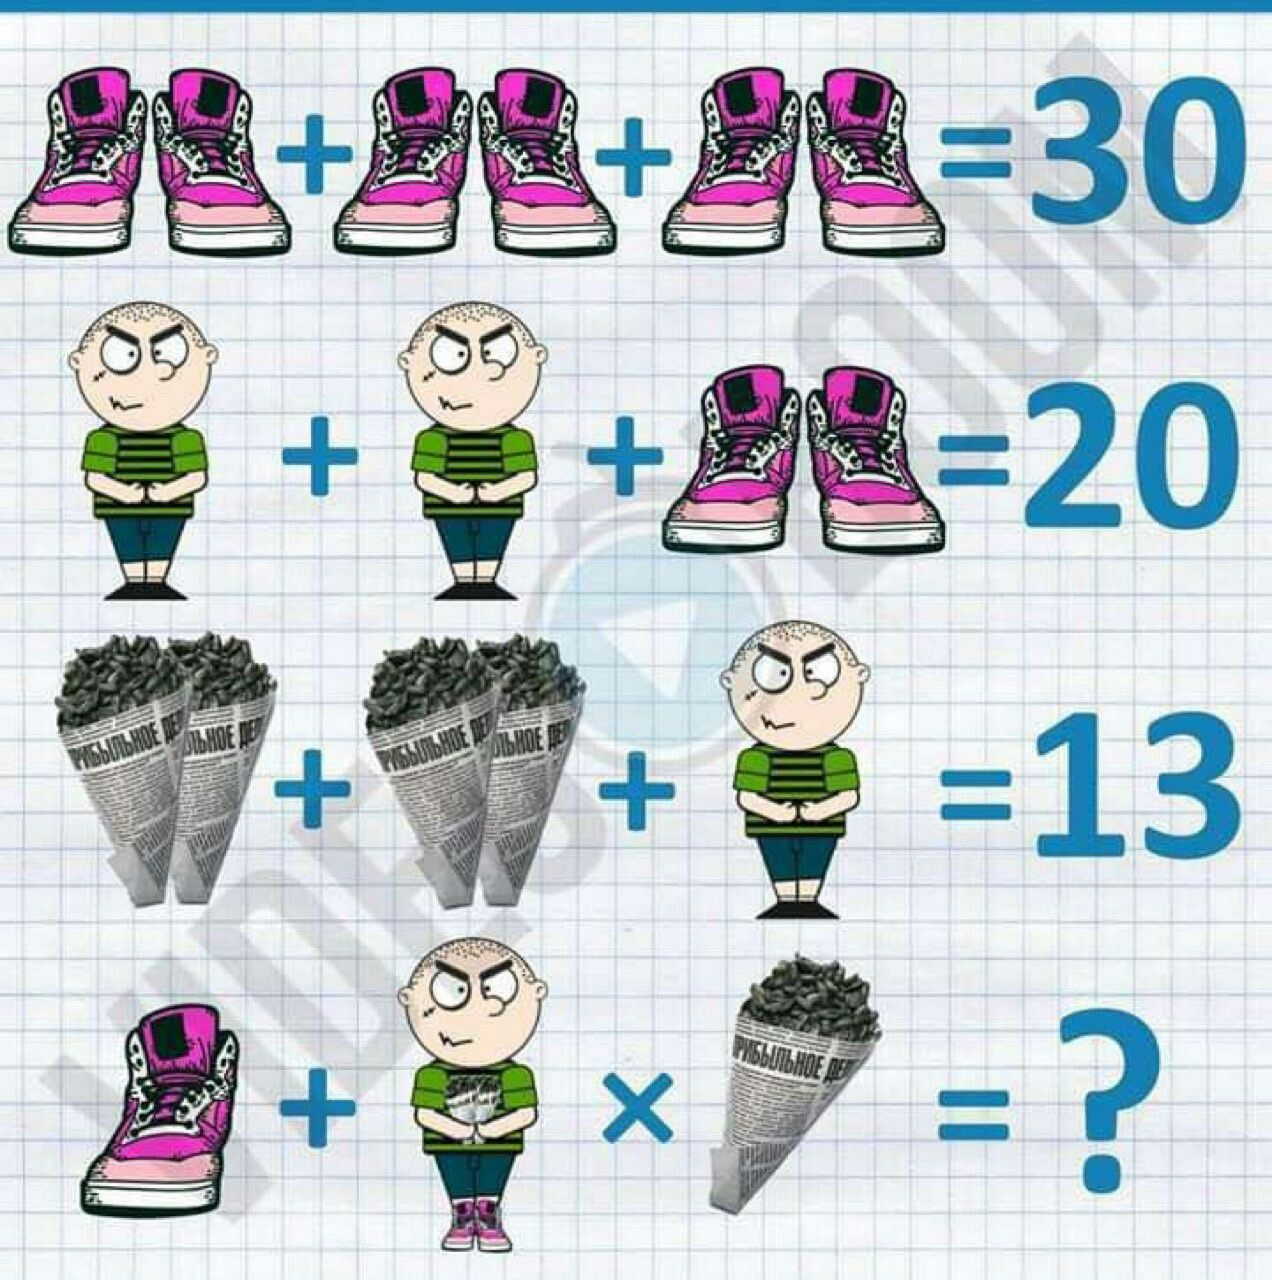 Pin by Rashid Mbuma on puzzle (With images) Math riddles